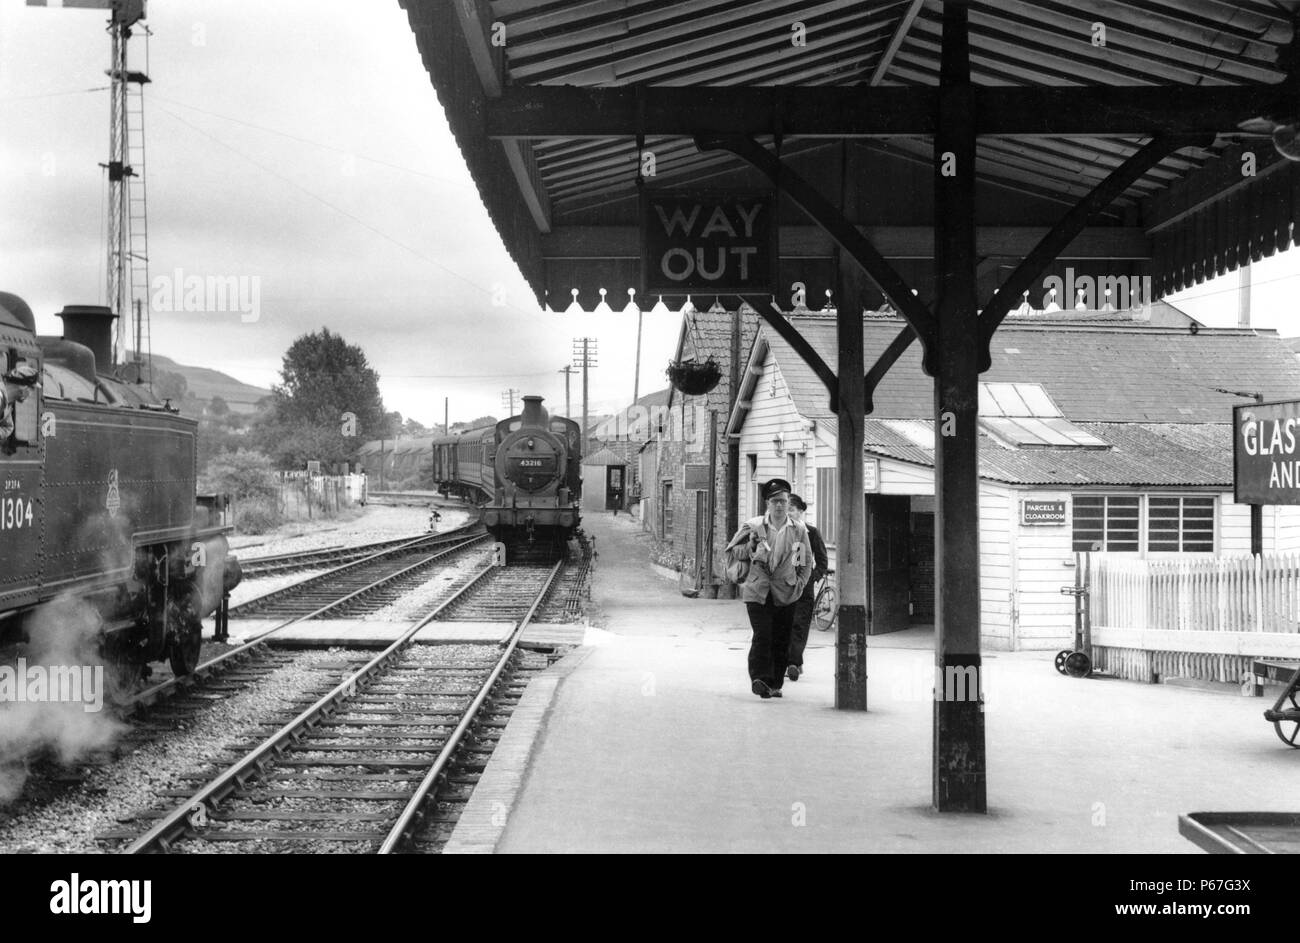 Glastonbury and Street station on the branch from Wells to Bridgewater on the SDJR. The station is 5 1/2 miles from Wells and 14 miles from Bridgwater - Stock Image